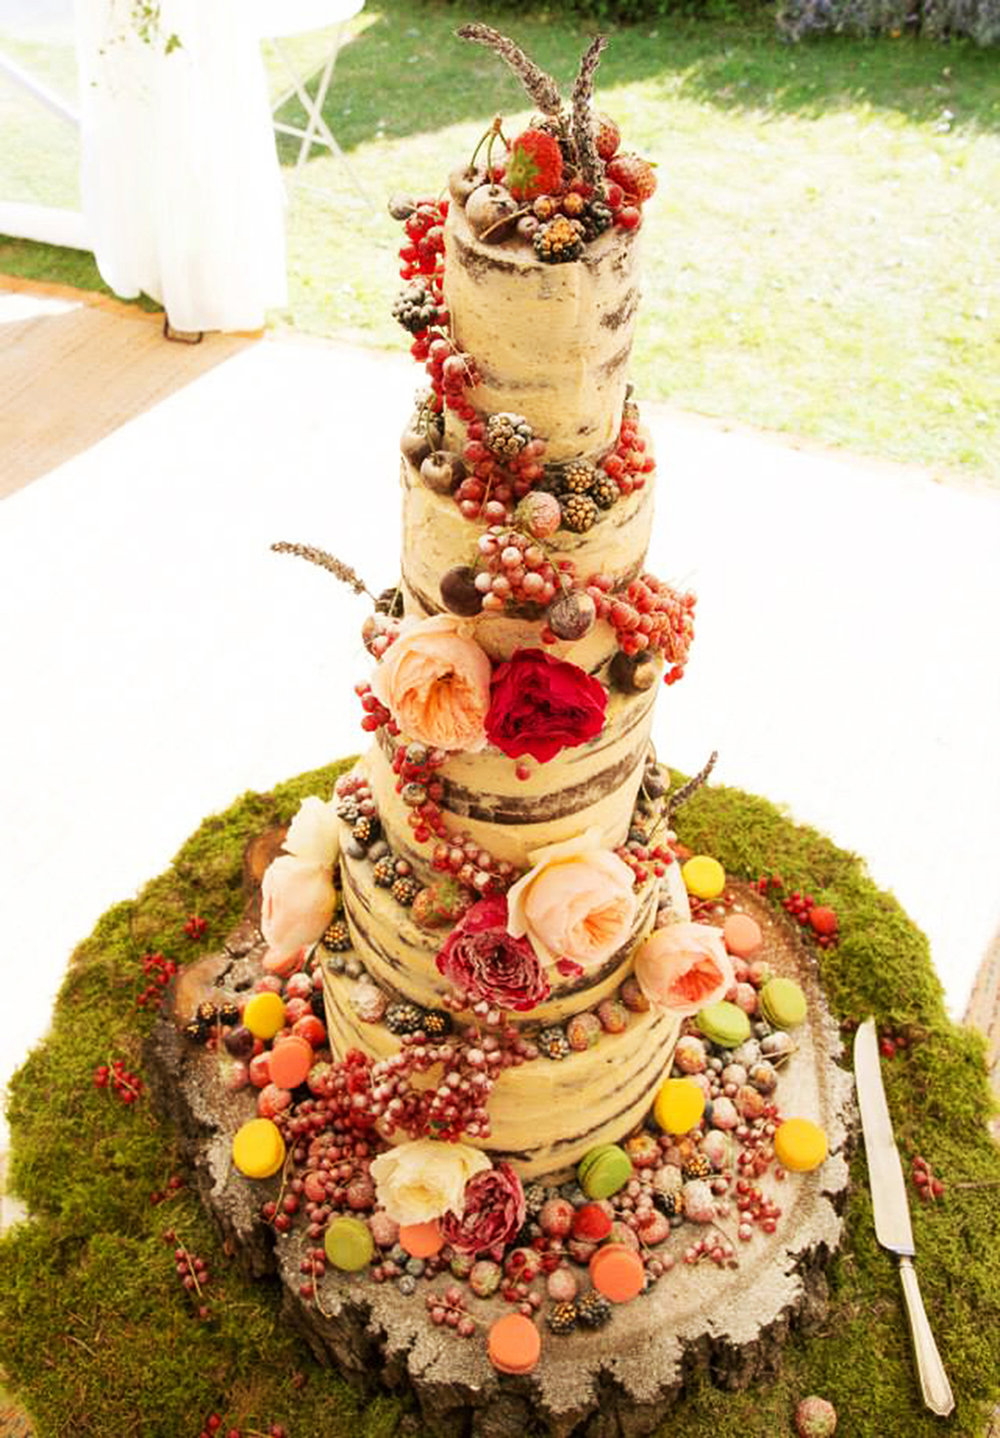 Woodland Wedding Botanical Cake - This is our super showstopper botanical wedding cake. Up to five tiers of delicious cake flavours styled with fresh buttercream & adorned with piles & piles of fresh fruits & berries. Why not serve it as dessert for your big day along side a hefty scoop of ice cream & more crisp berries?